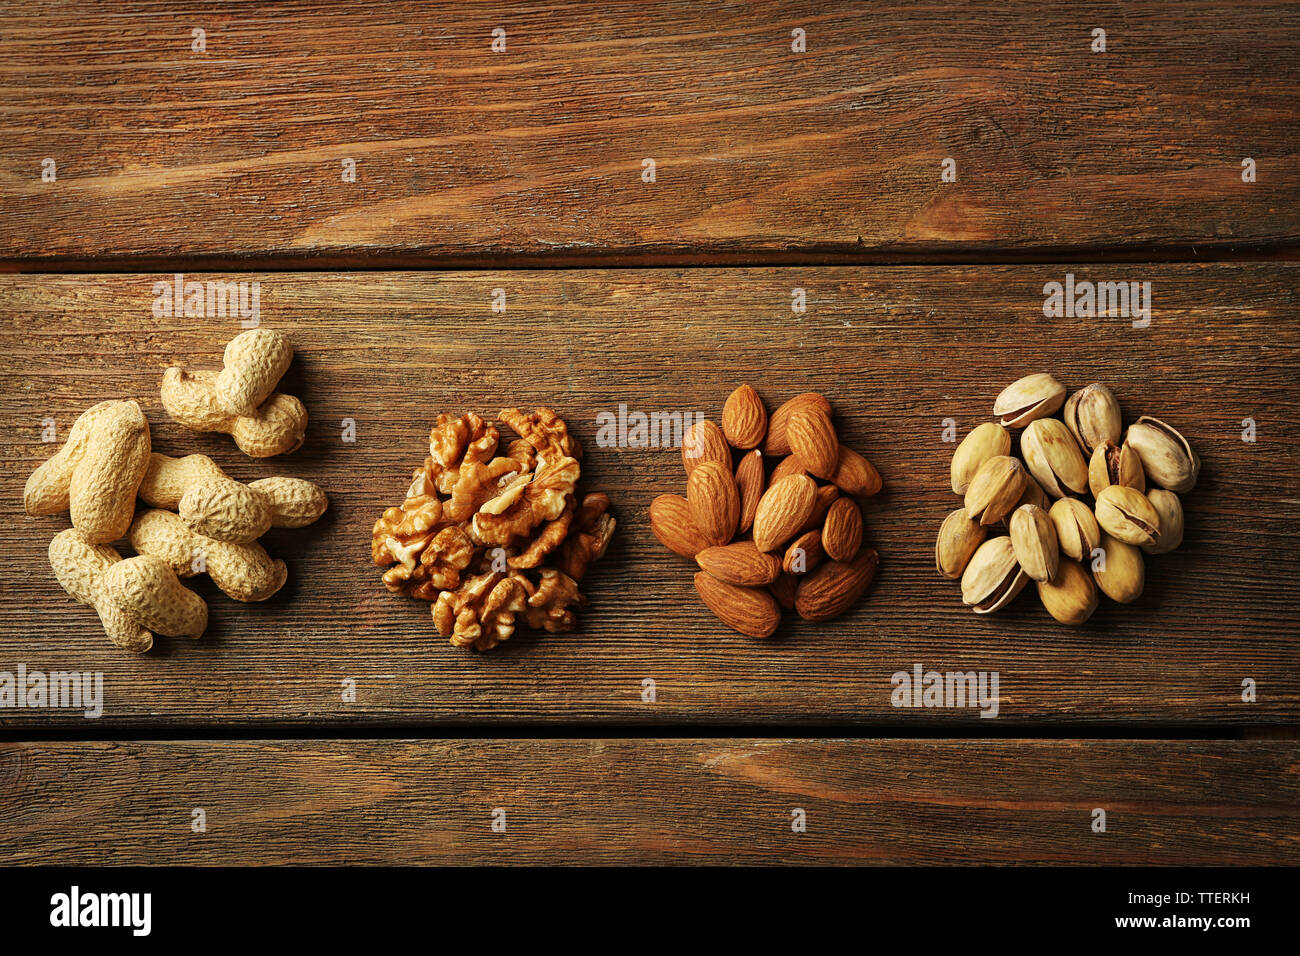 Four piles of pistachios, walnut kernel, almonds and peanuts on the wooden table Stock Photo